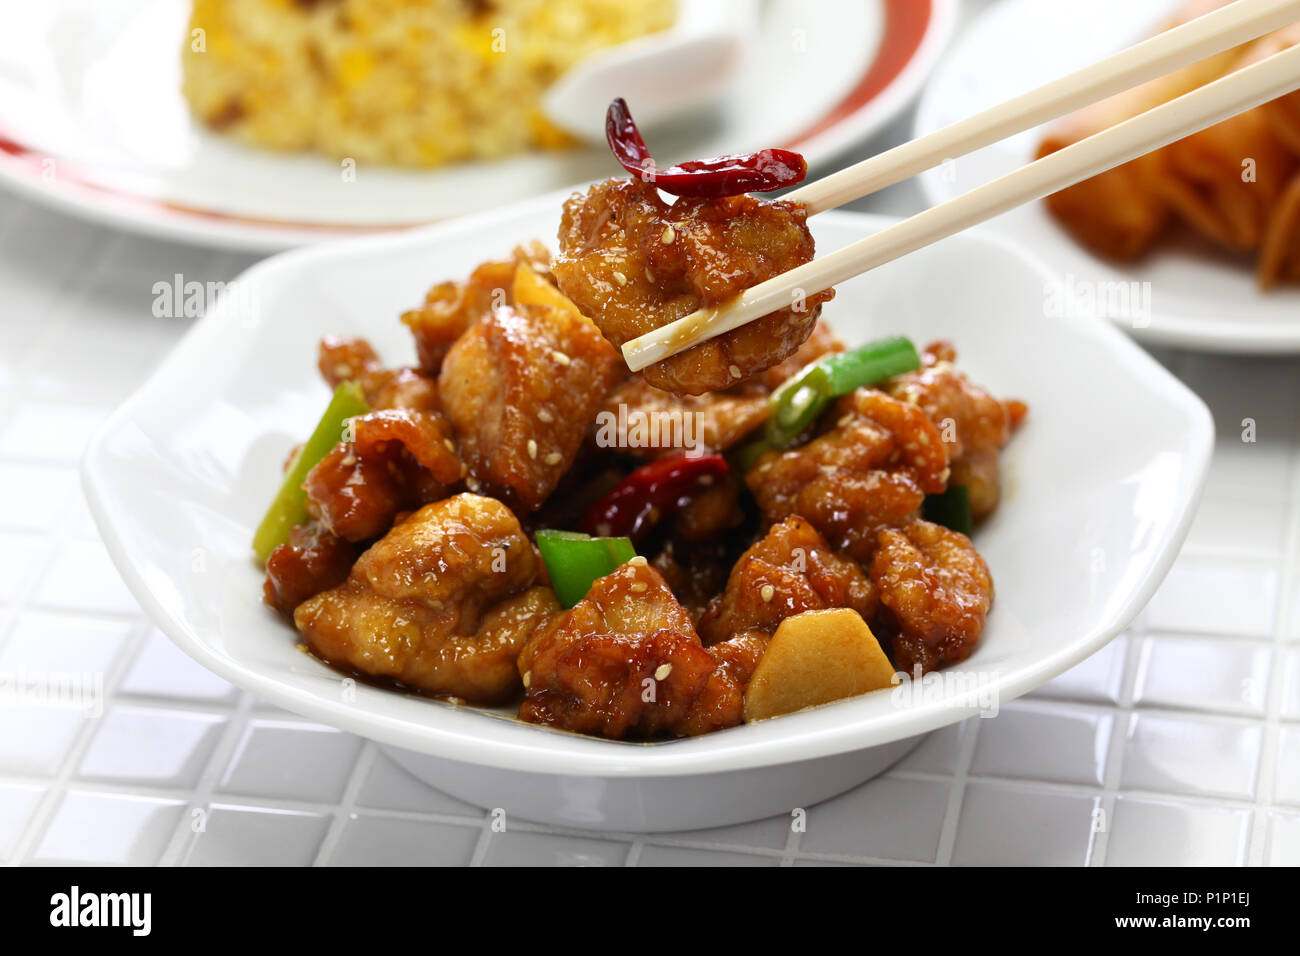 American Fried Rice Stockfotos & American Fried Rice Bilder - Alamy